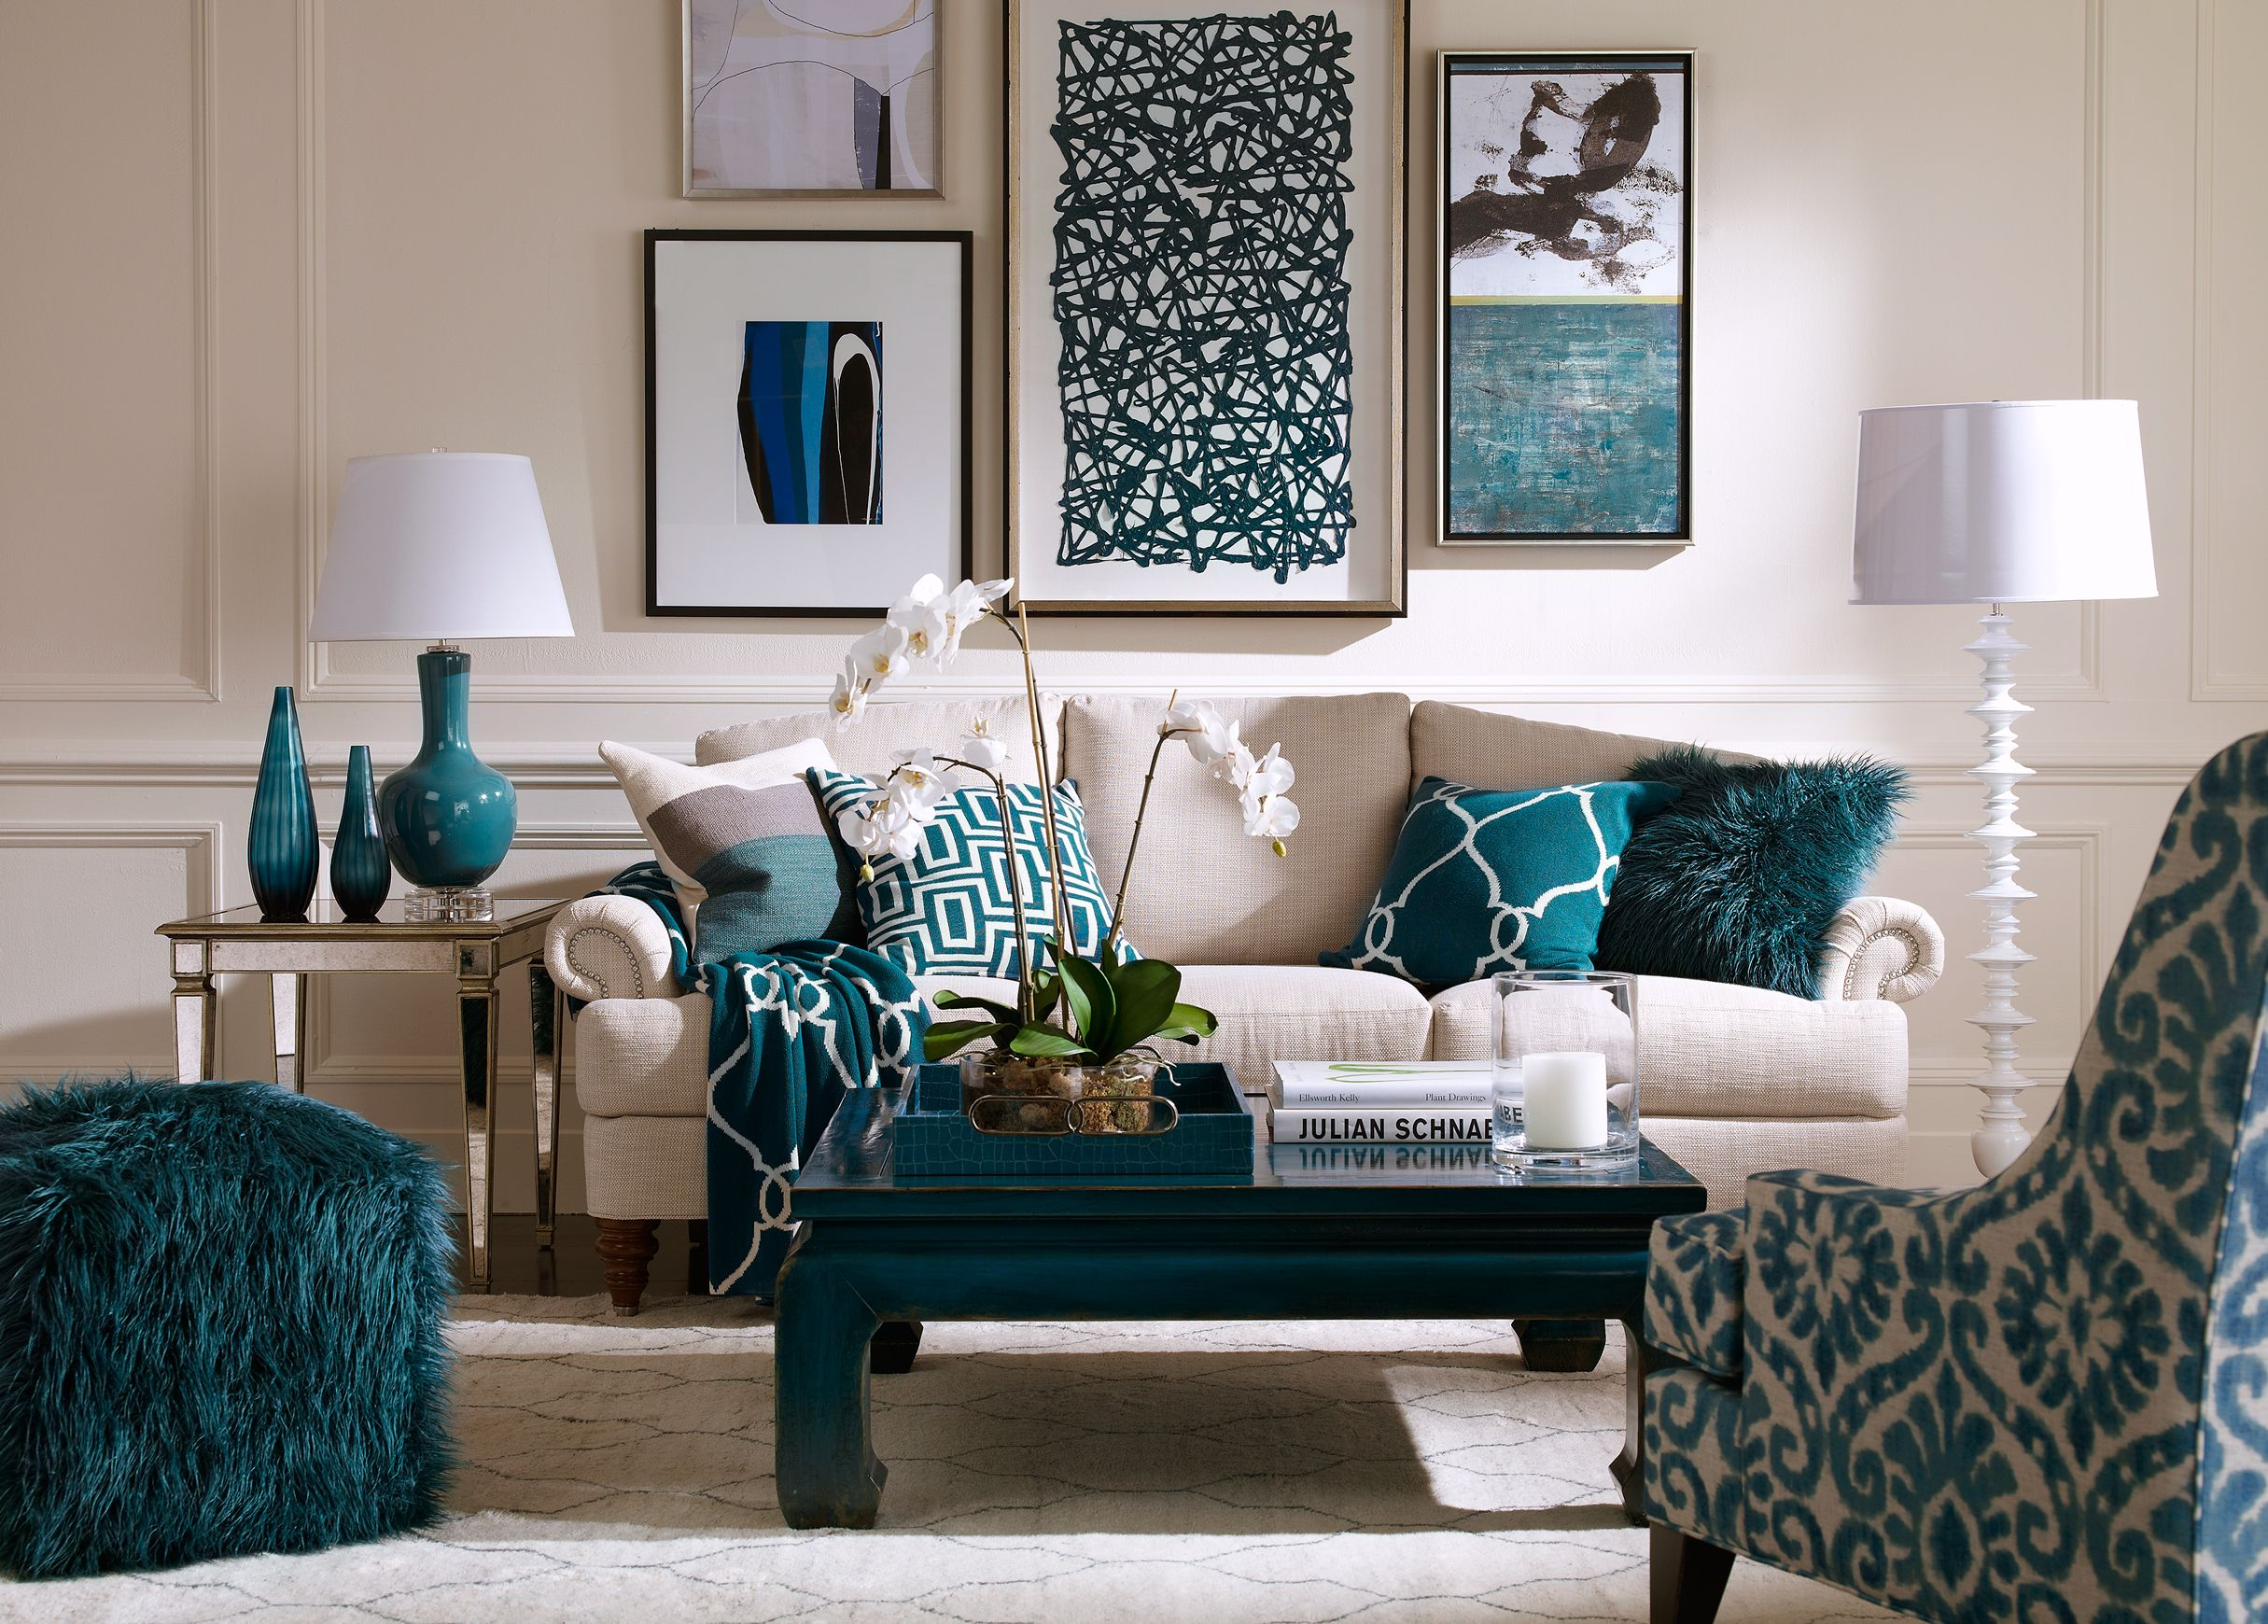 Best 25+ Turquoise accents ideas on Pinterest | Living room ...